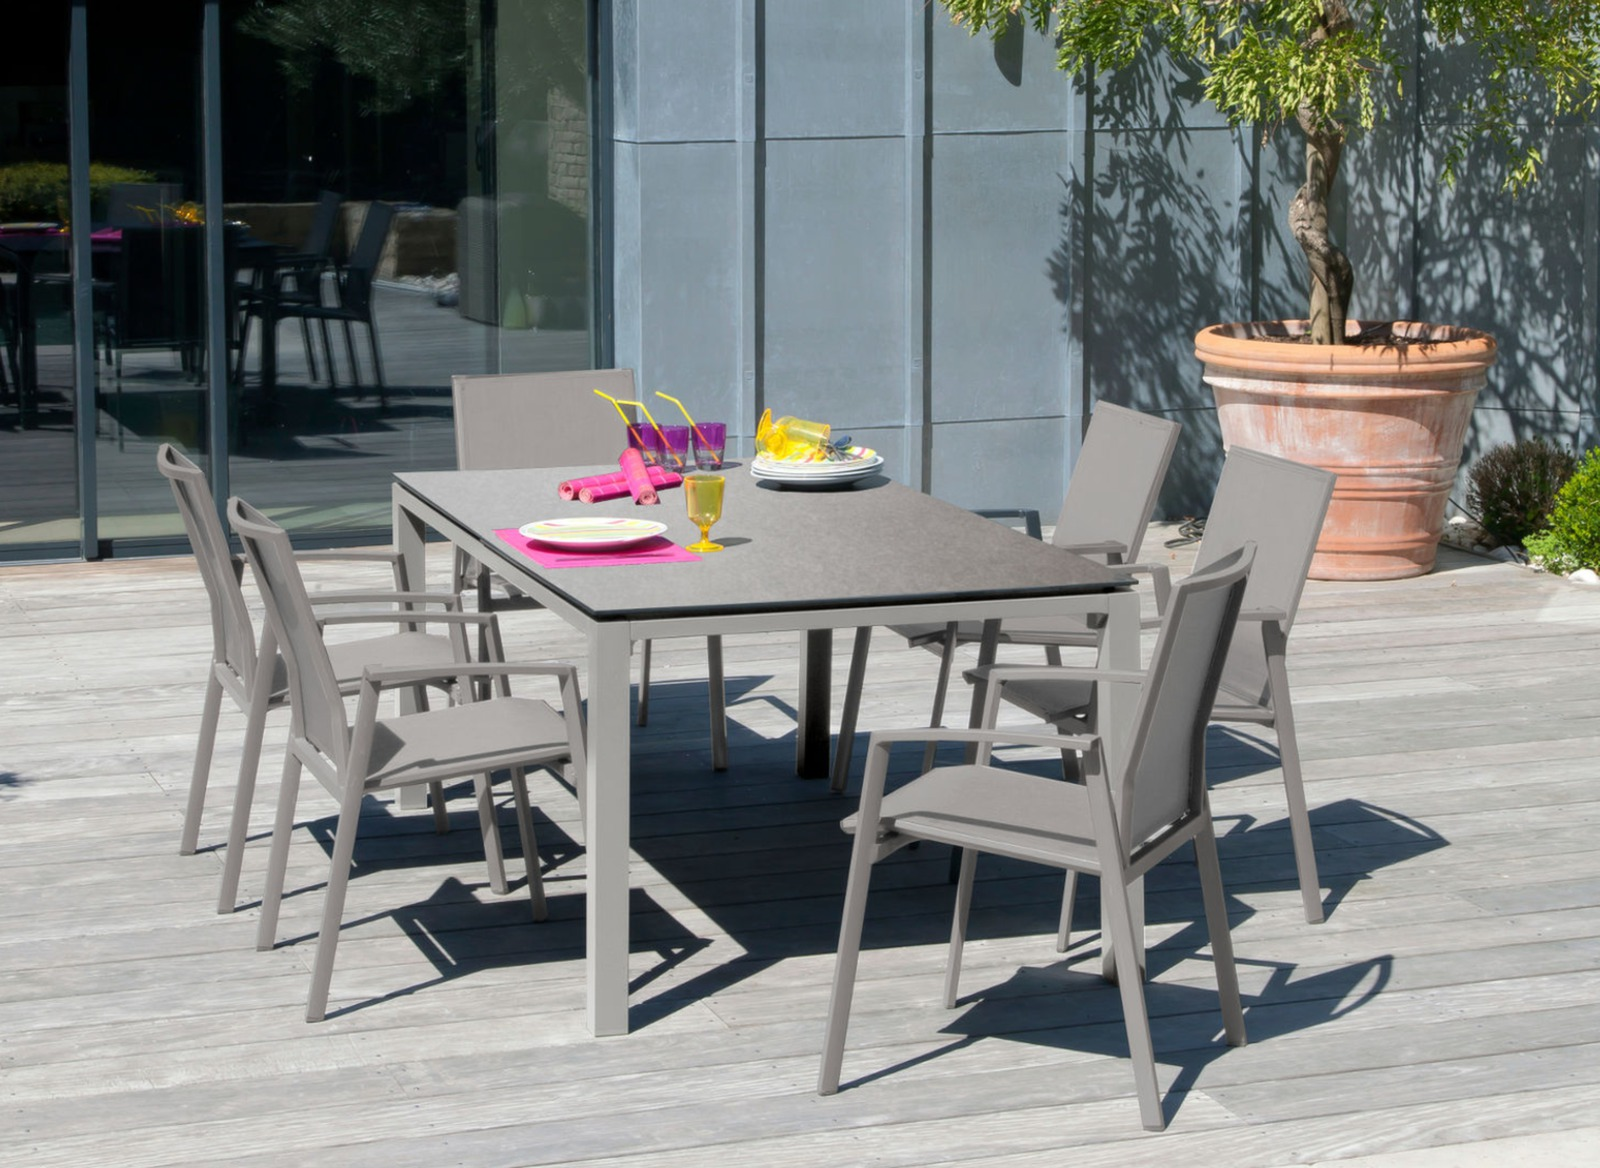 table de jardin stoneo 180cm plateau hpl meubles jardin proloisirs. Black Bedroom Furniture Sets. Home Design Ideas